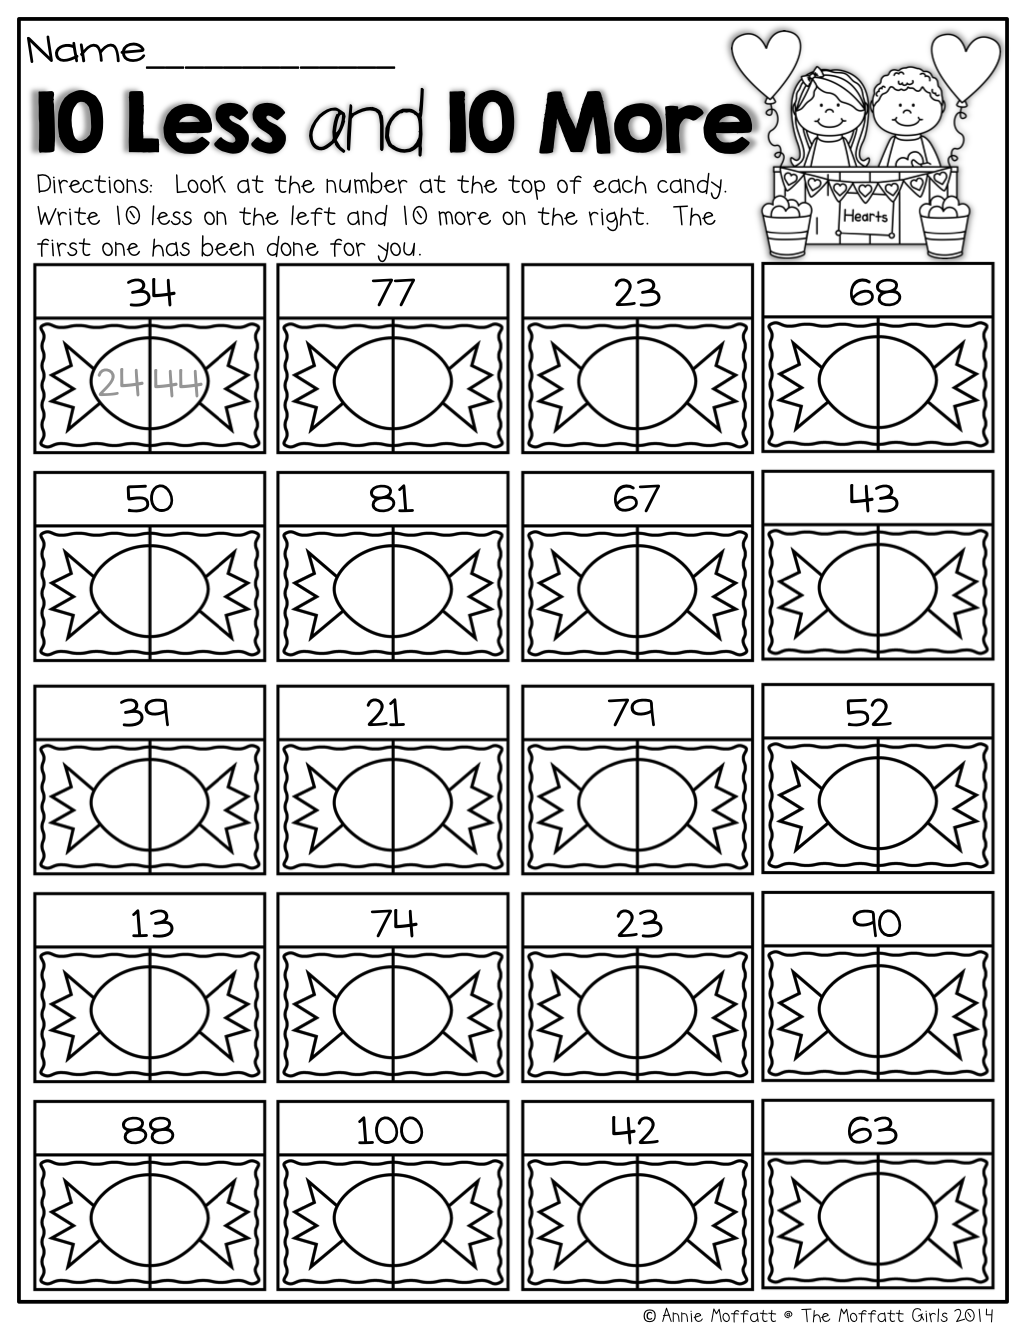 More Less Dice Worksheet